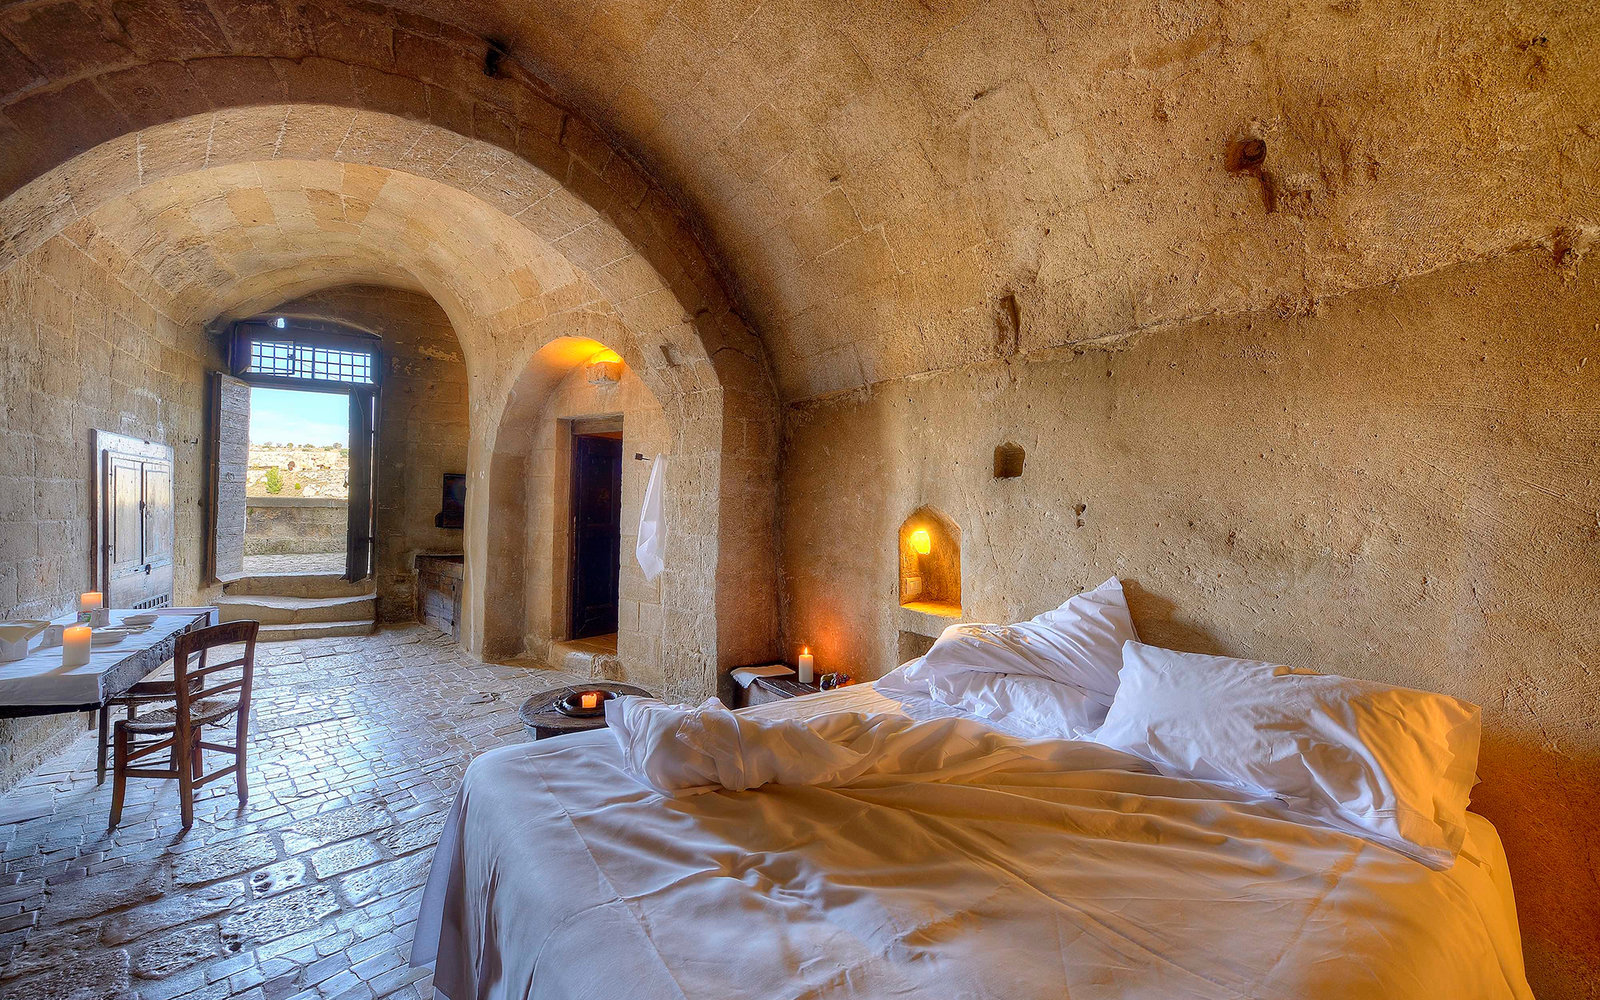 9 Unique Hotel Rooms You Can Only Find in Italy